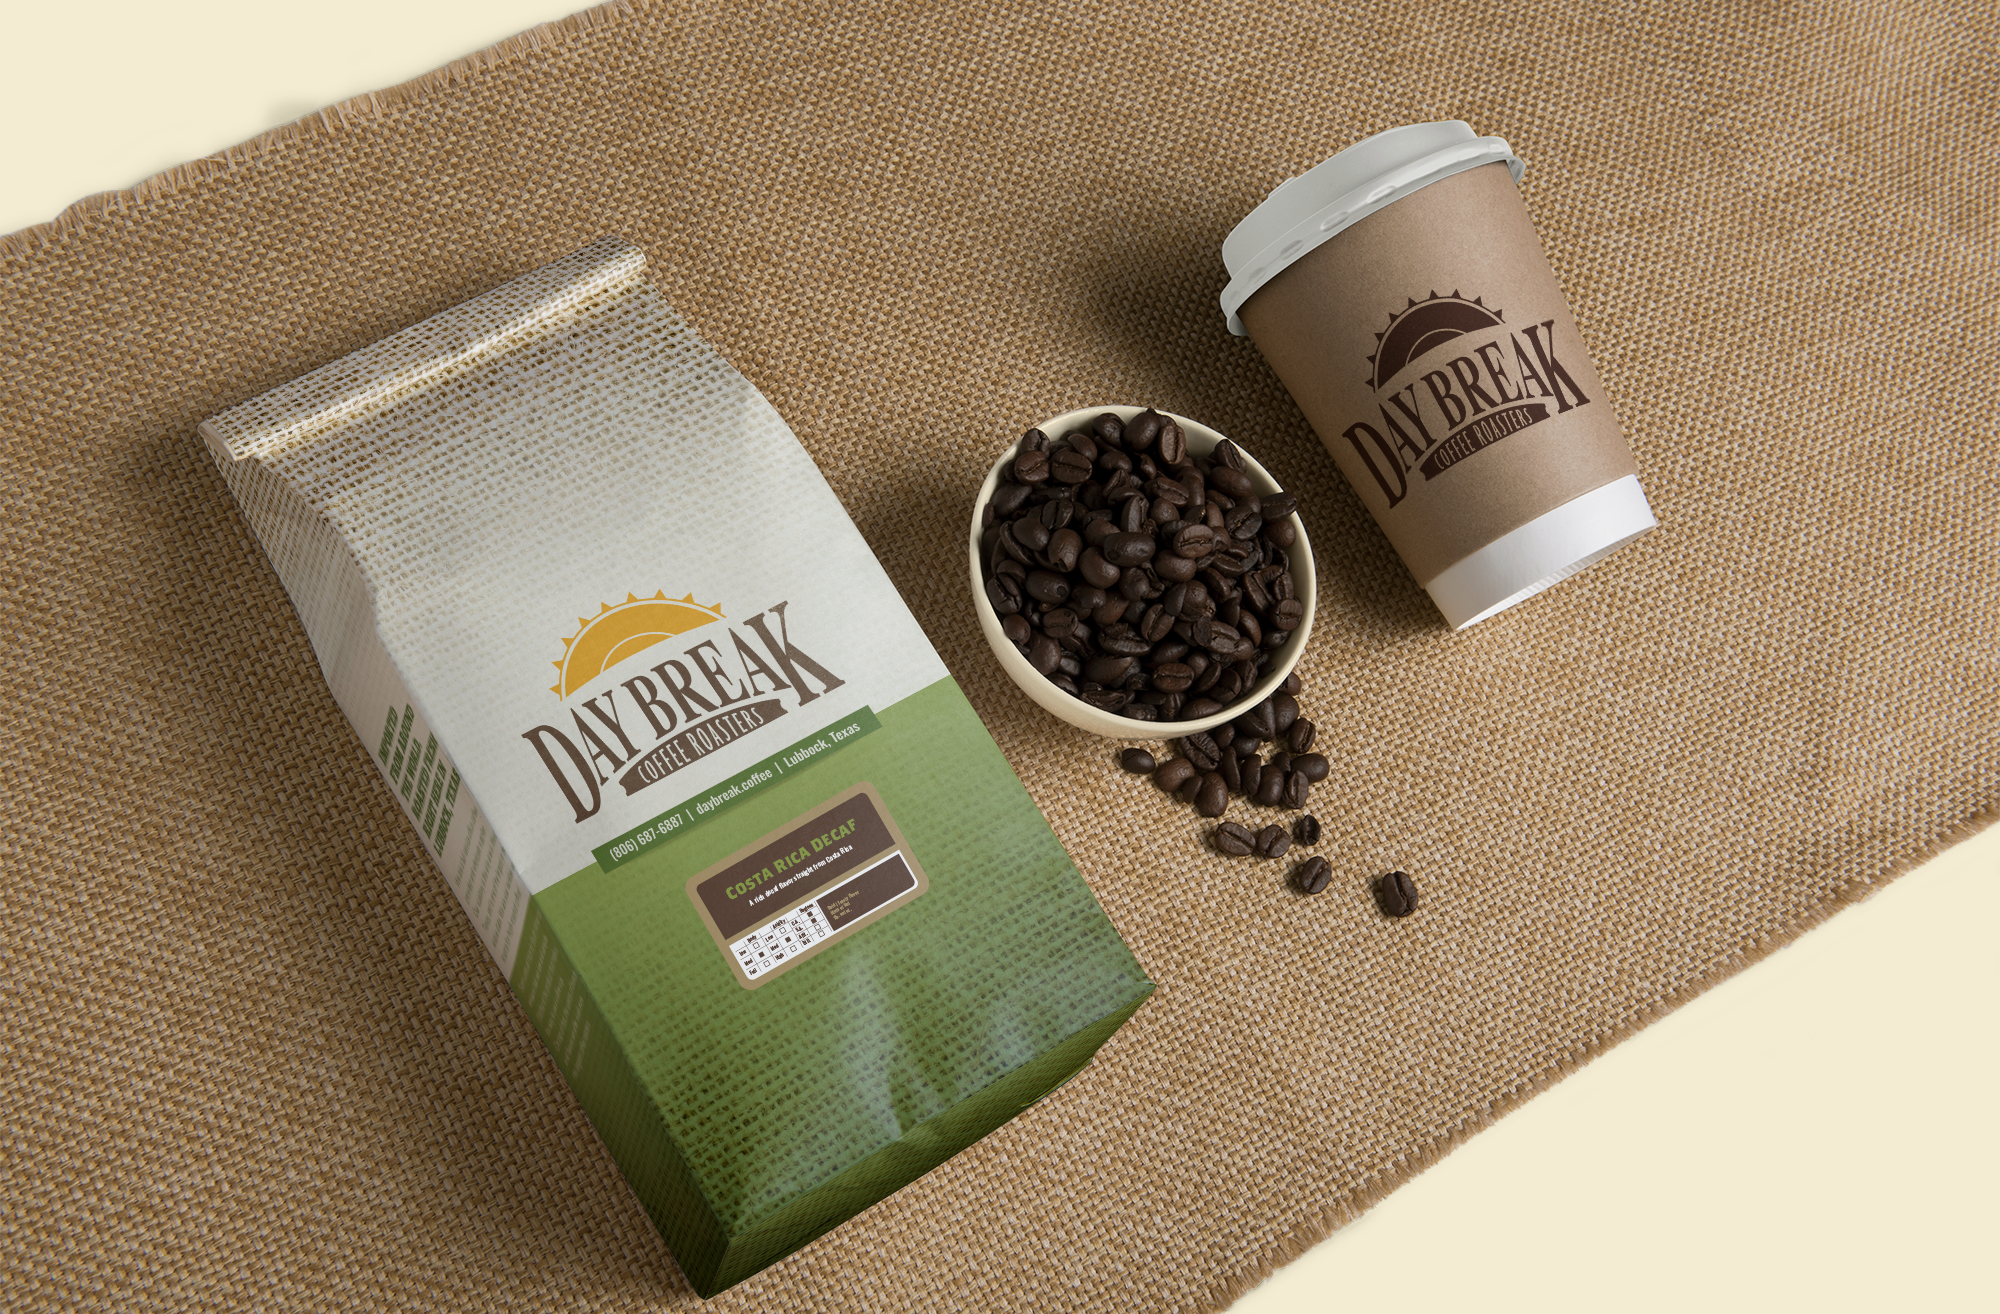 Costa Rica Decaf coffee bag, beans, and coffee cup